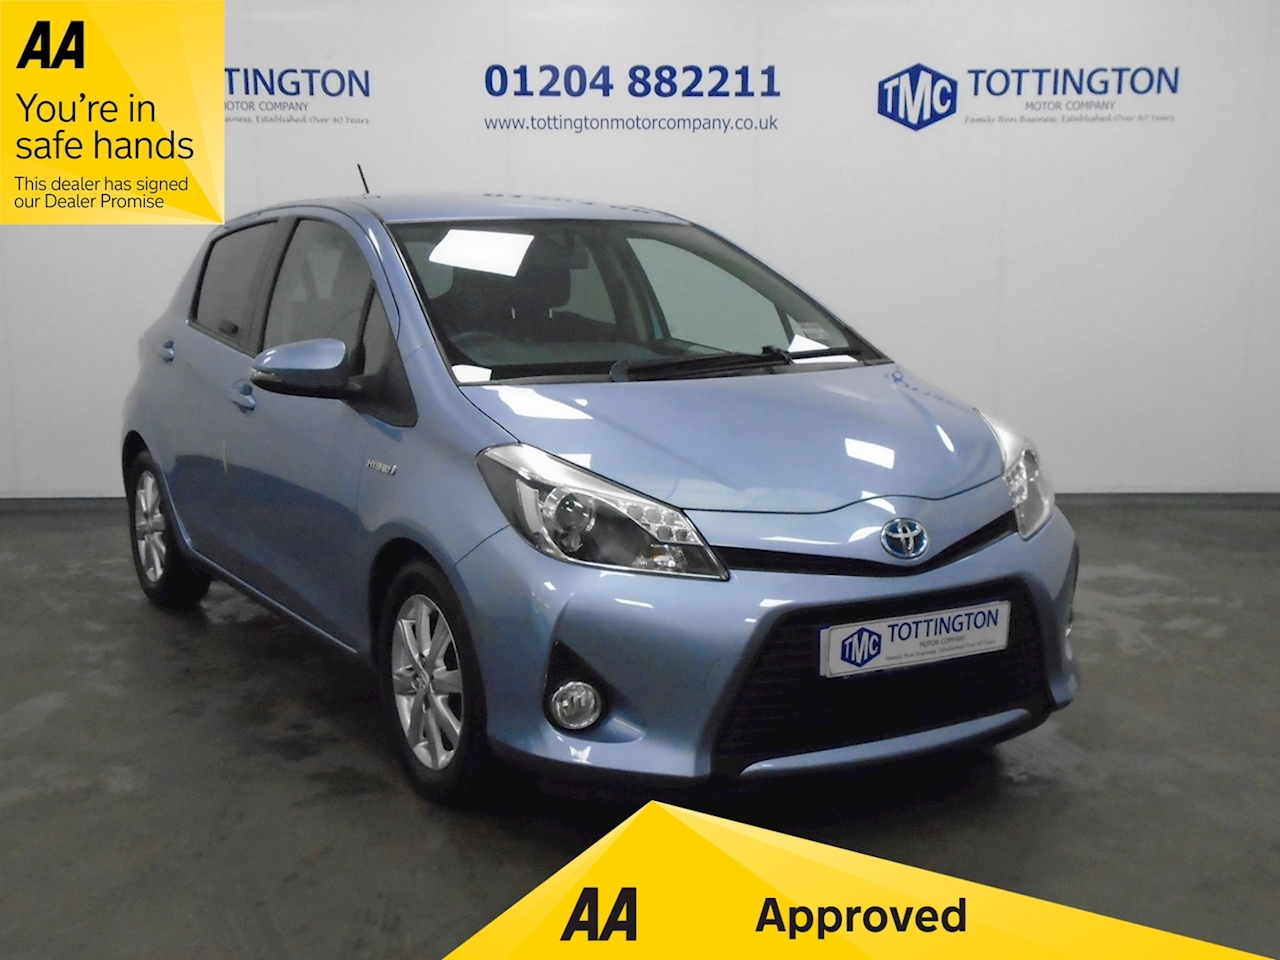 Toyota Yaris T4 (Automatic) 1.5 5dr Hatchback Cvt Petrol/Electric